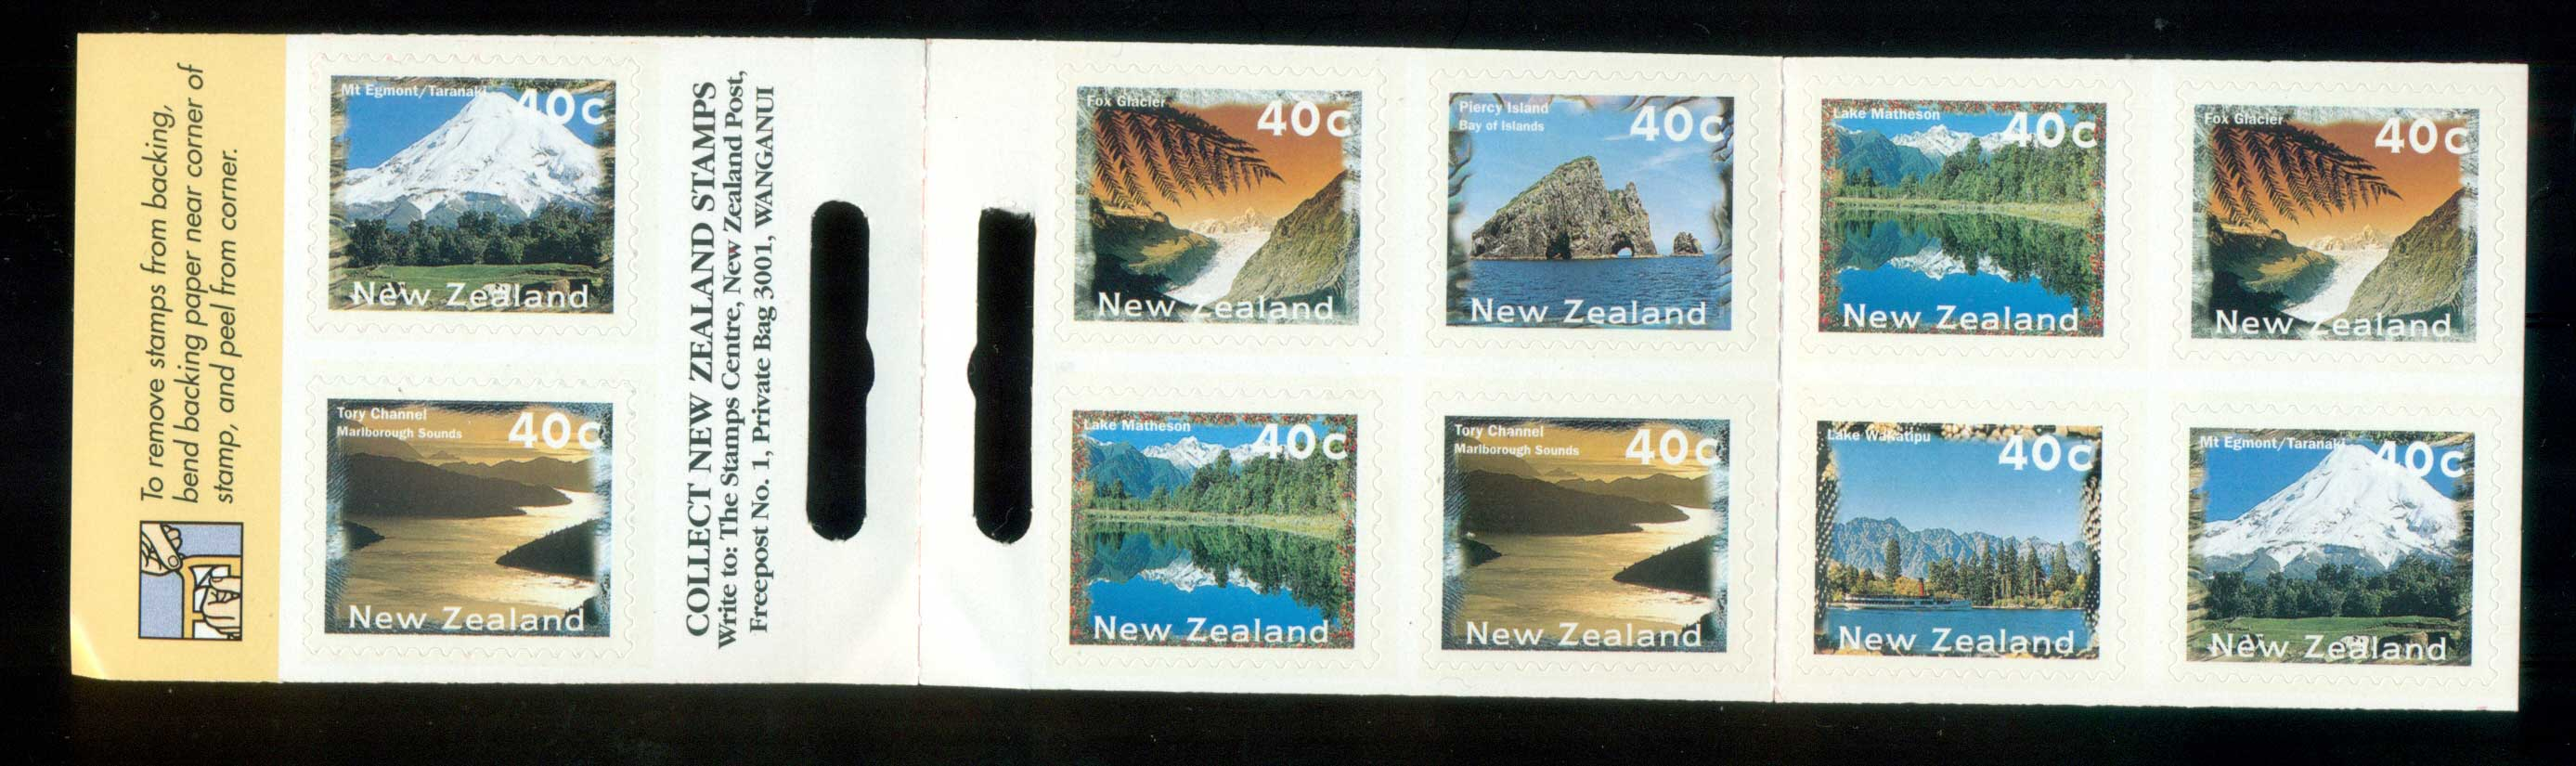 New Zealand 1996 Scenic Views P&S Booklet MUH lot53213